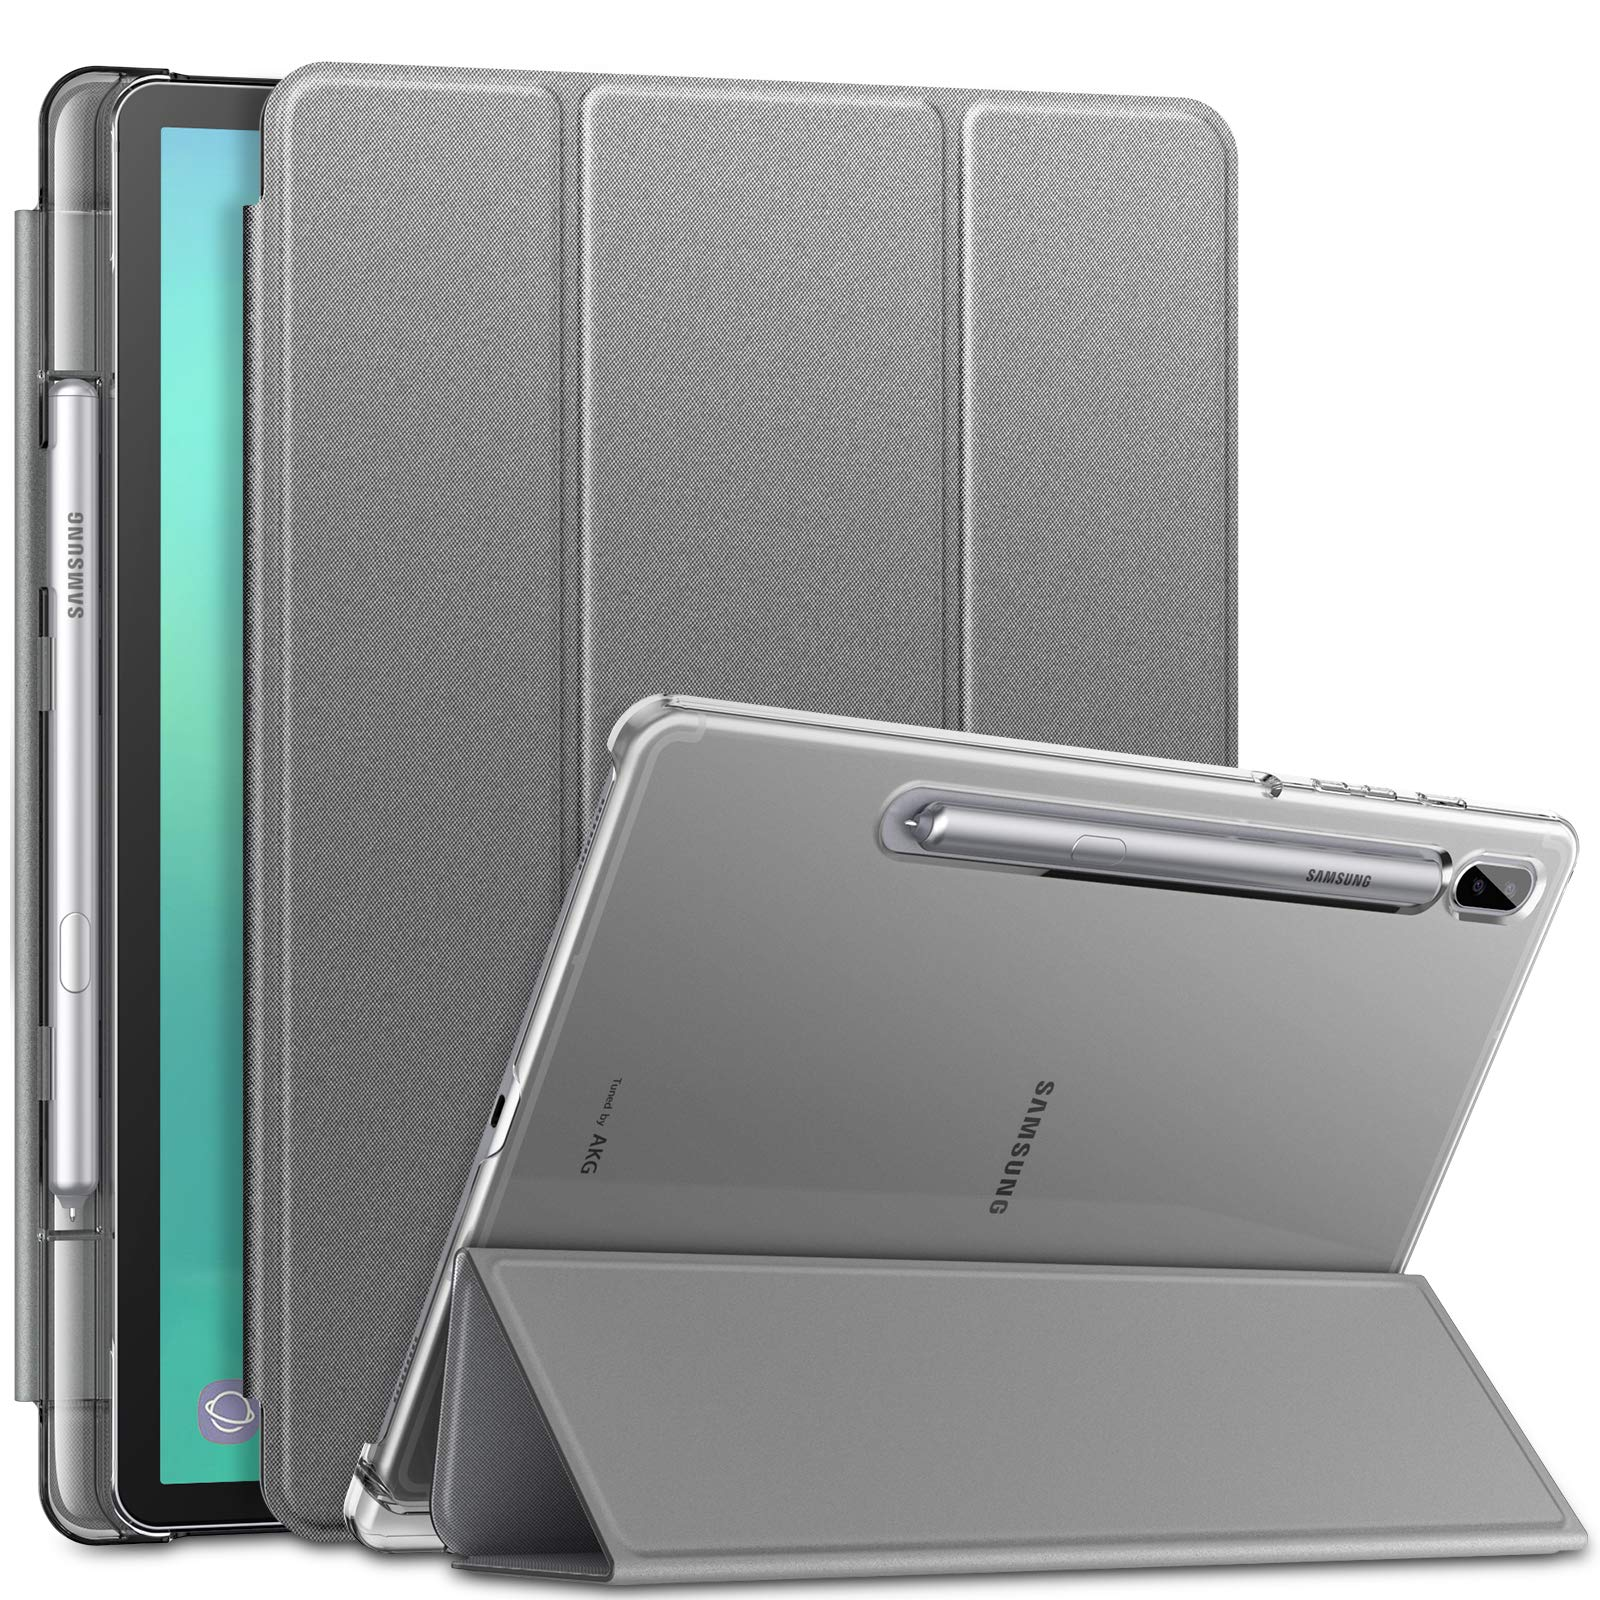 Infiland Case for Samsung Galaxy Tab S6 10.5 Inch Model SM-T860 SM-T865 SM-T867 2019 Release Tablet, with S Pen Holder, Support S Pen Wireless Charging, Auto Wake/Sleep, Gray